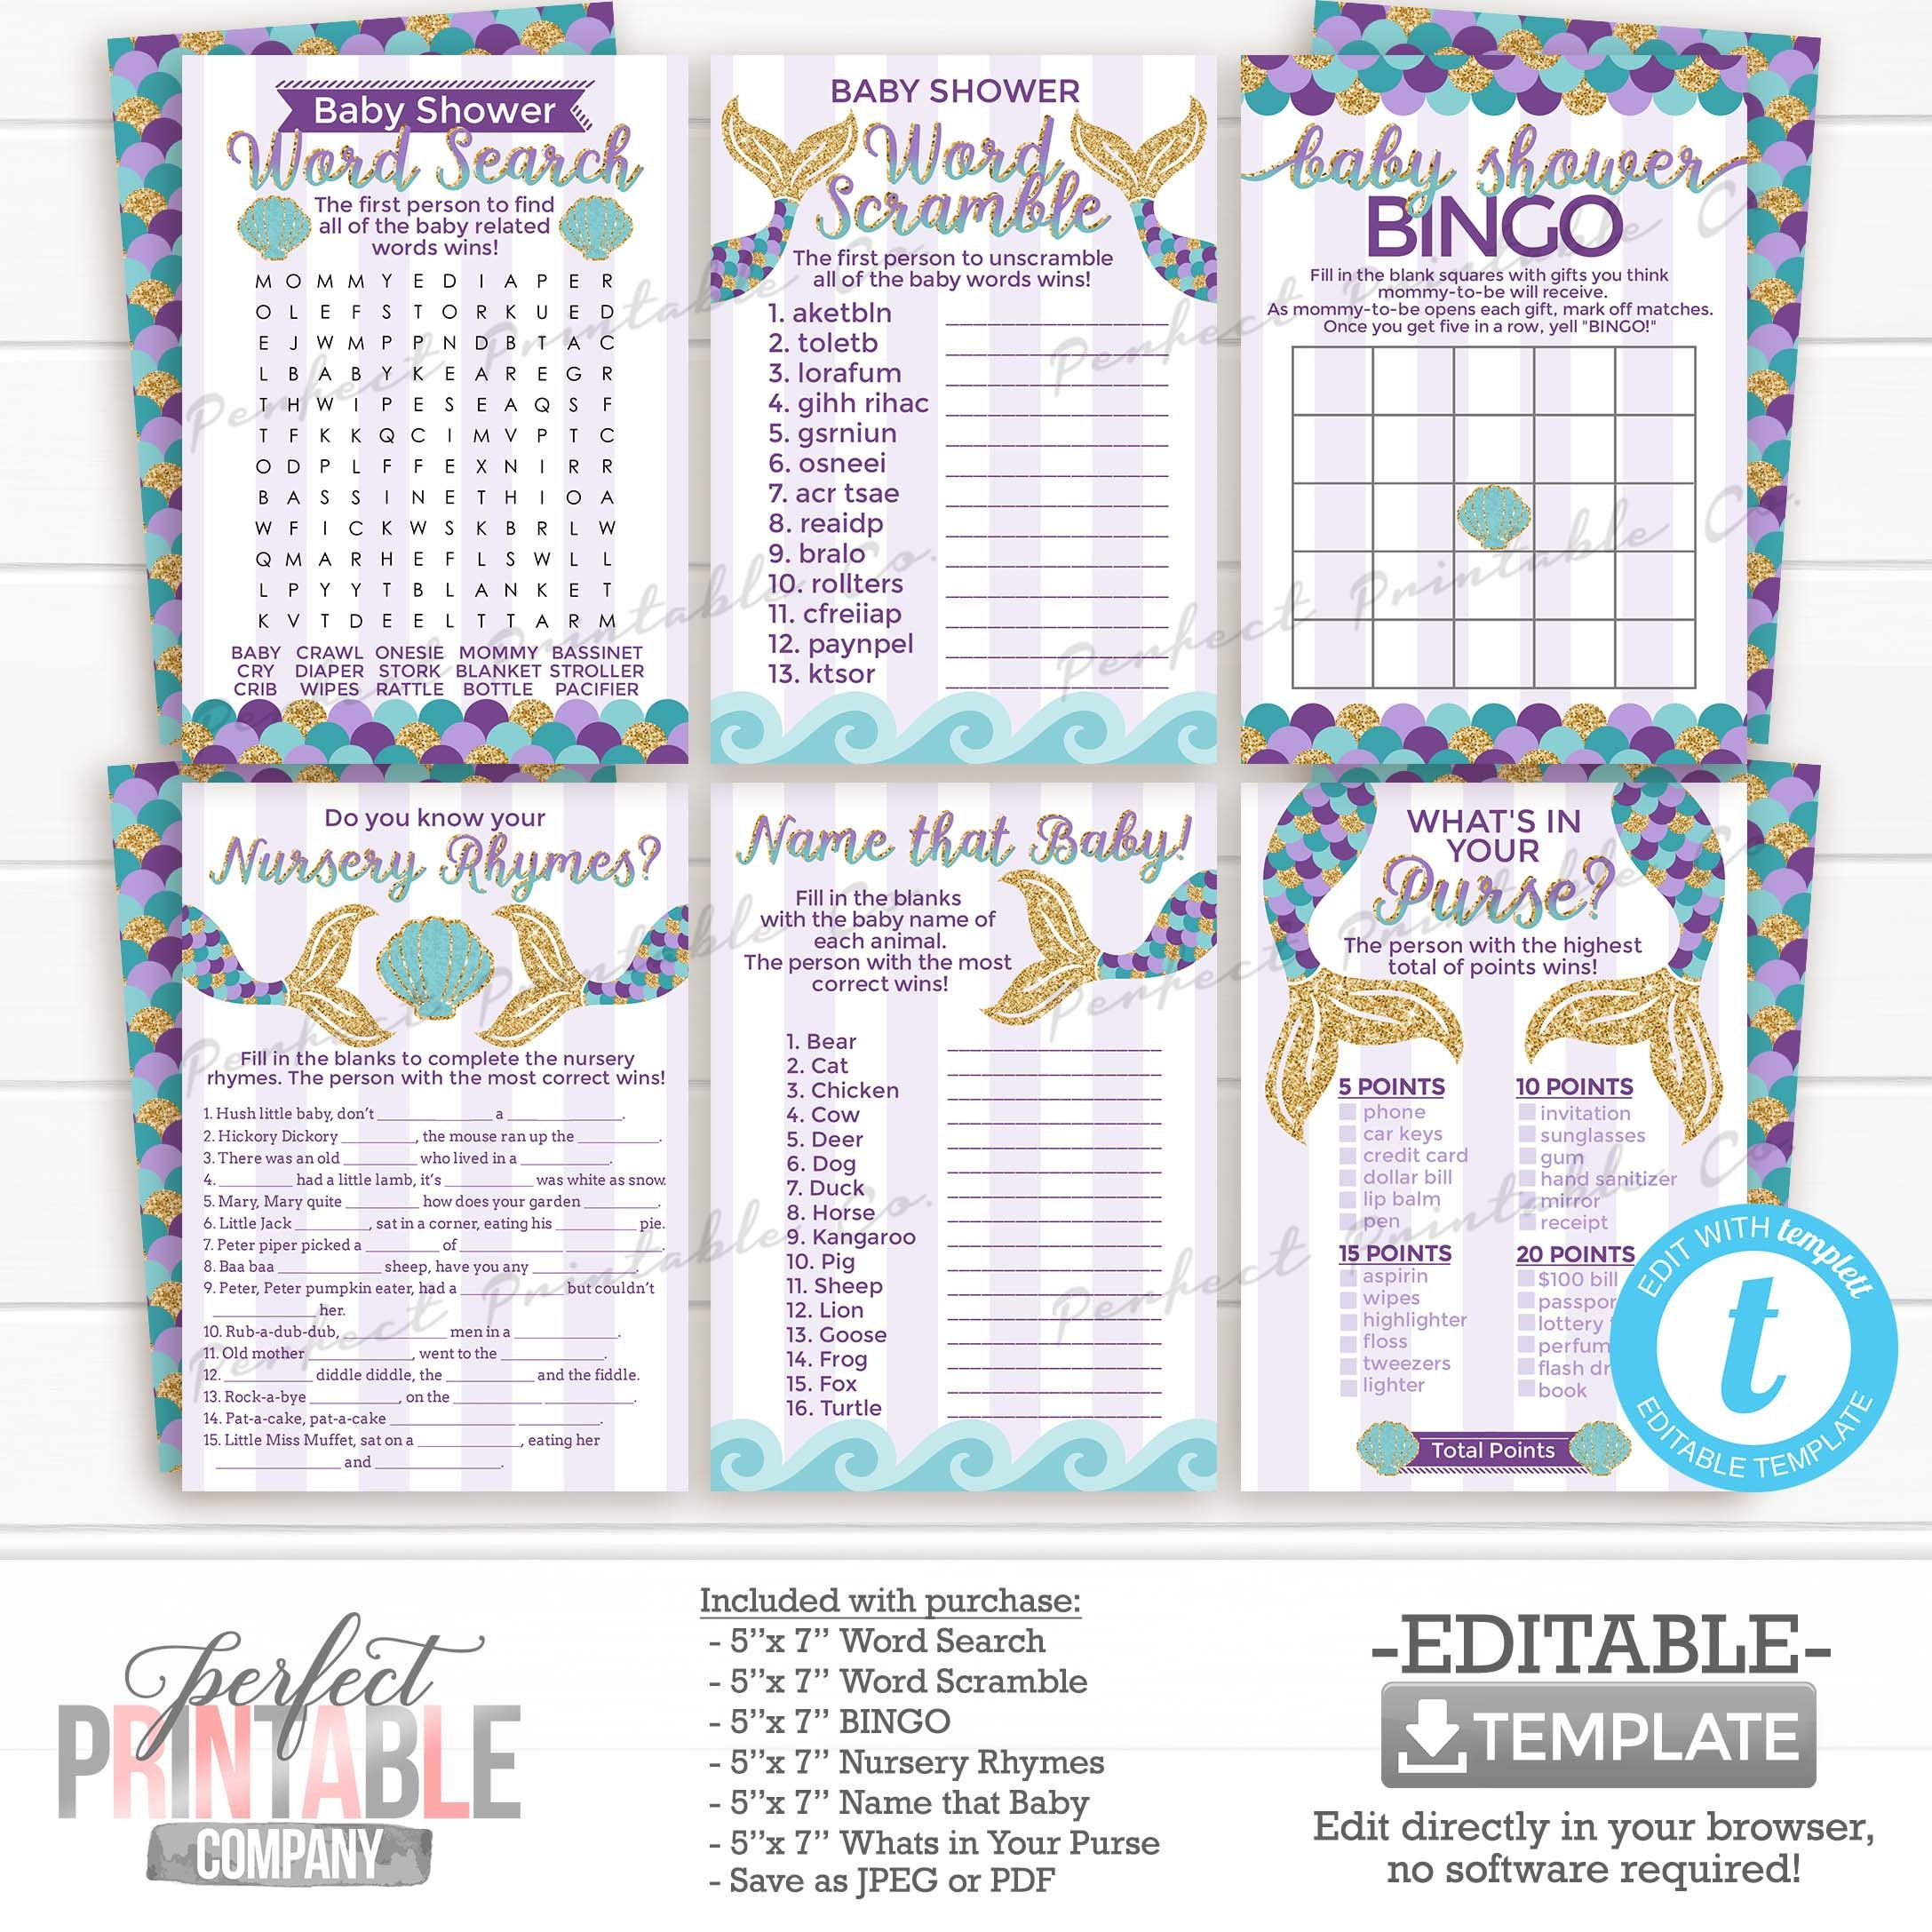 Mermaid Baby Shower Games Word Scramble Word Search Bingo Name Baby Animal Whats In Your Purse Nursery Rhyme Decorations 1034 In 2021 Mermaid Baby Showers Baby Shower De Baby Shower Wording